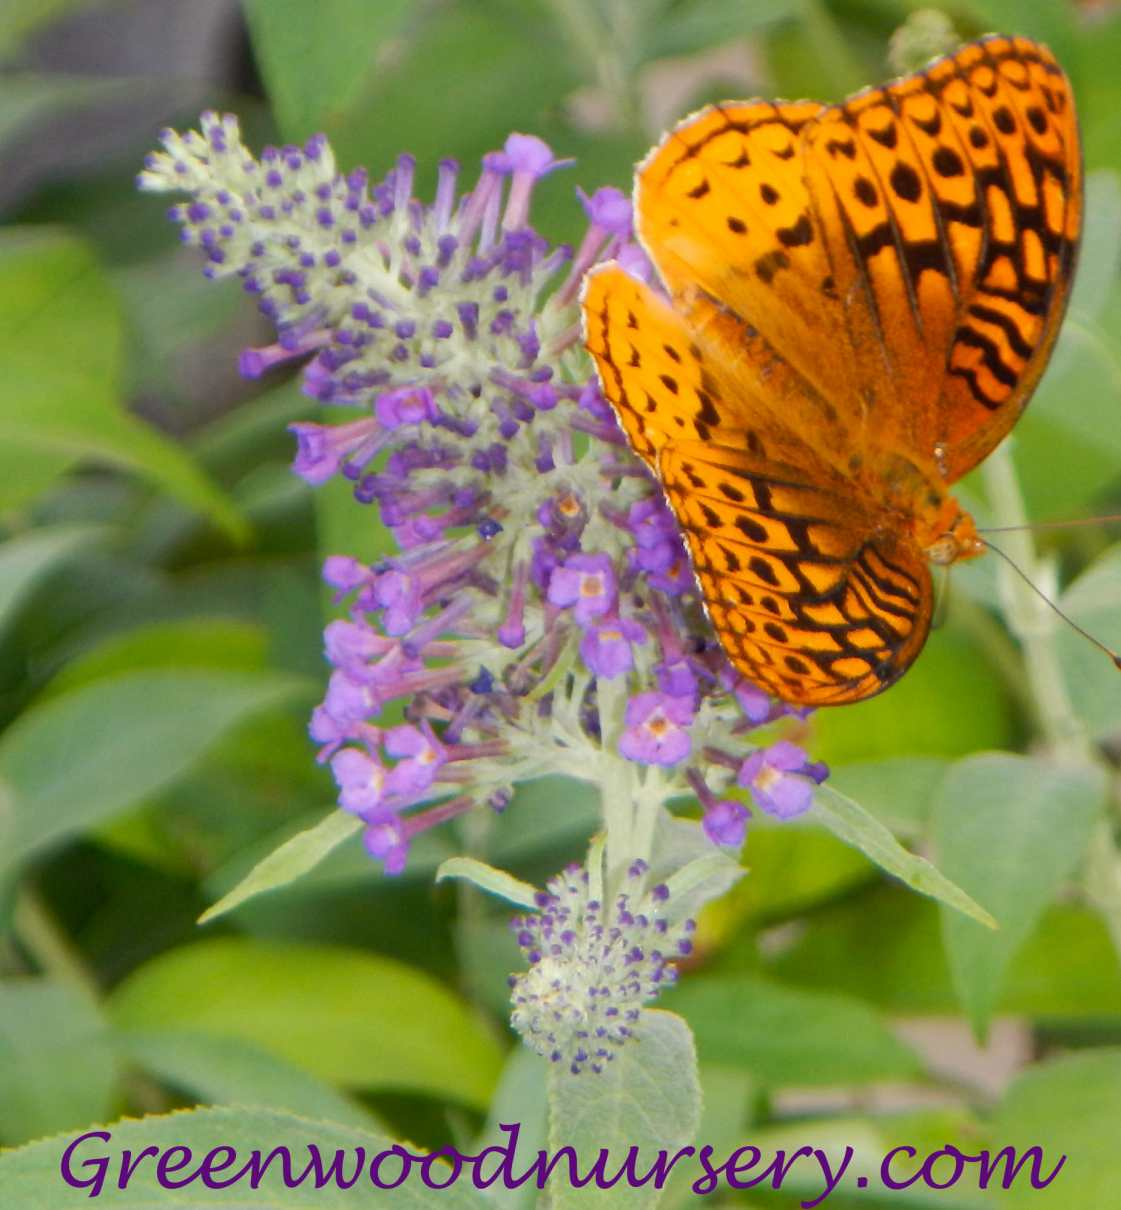 Buy Butterfly Bushes and other gardening plants online at GreenwoodNursery.com